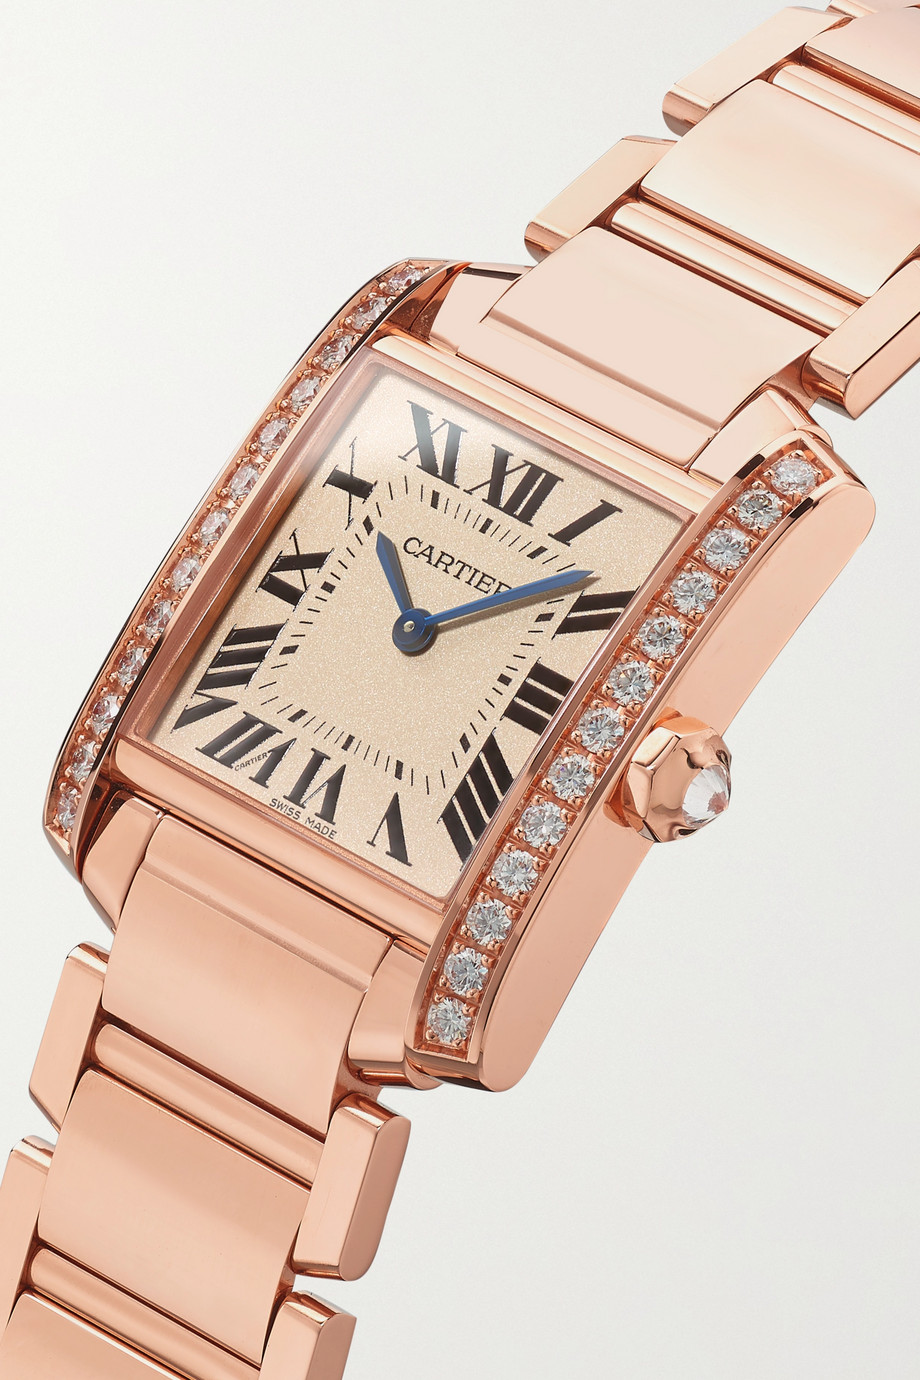 Cartier Tank Française 25mm medium 18-karat rose gold diamond watch